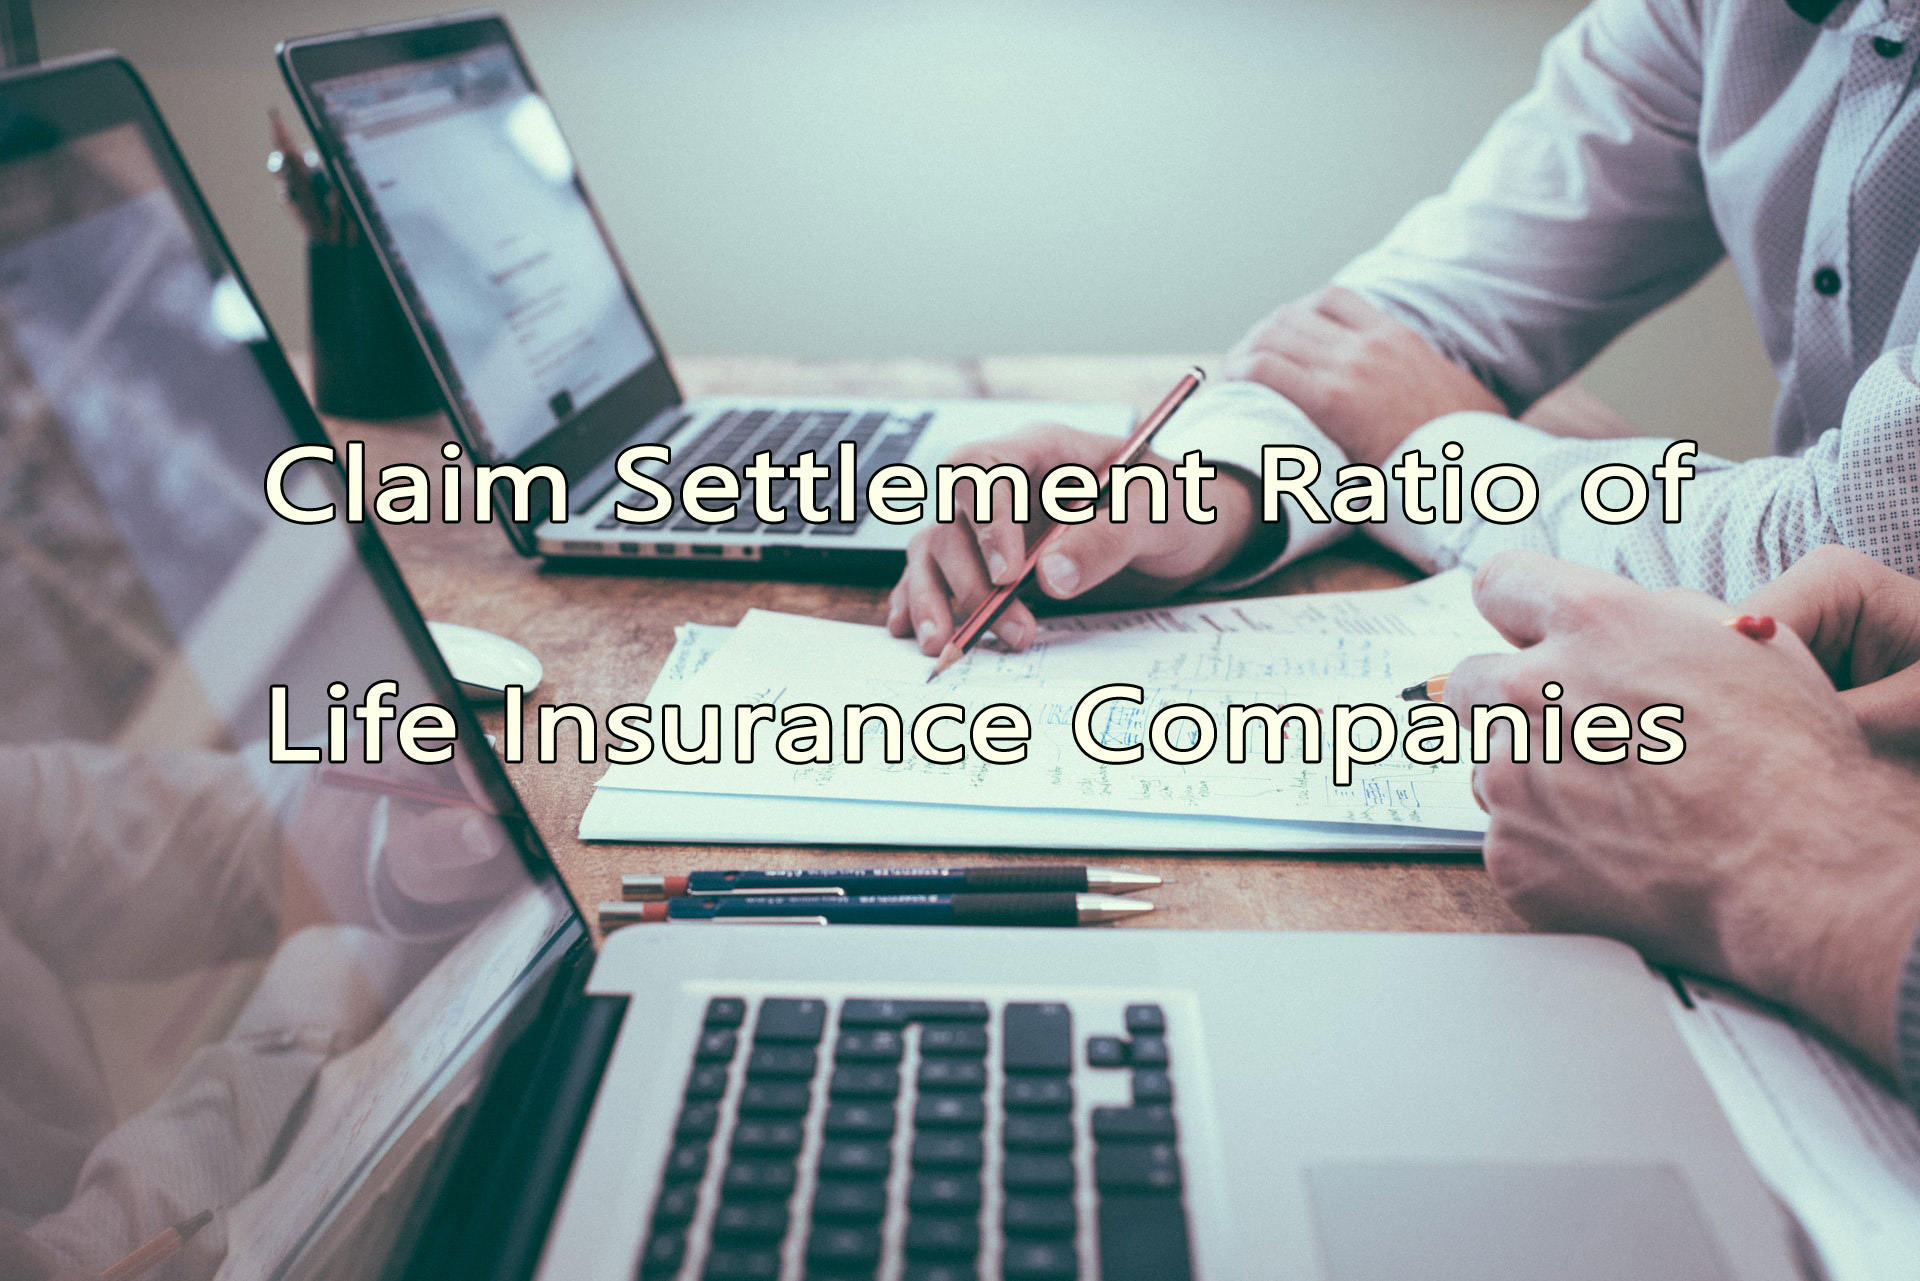 Claim Settlement Ratio of Life Insurance Companies in India 2021